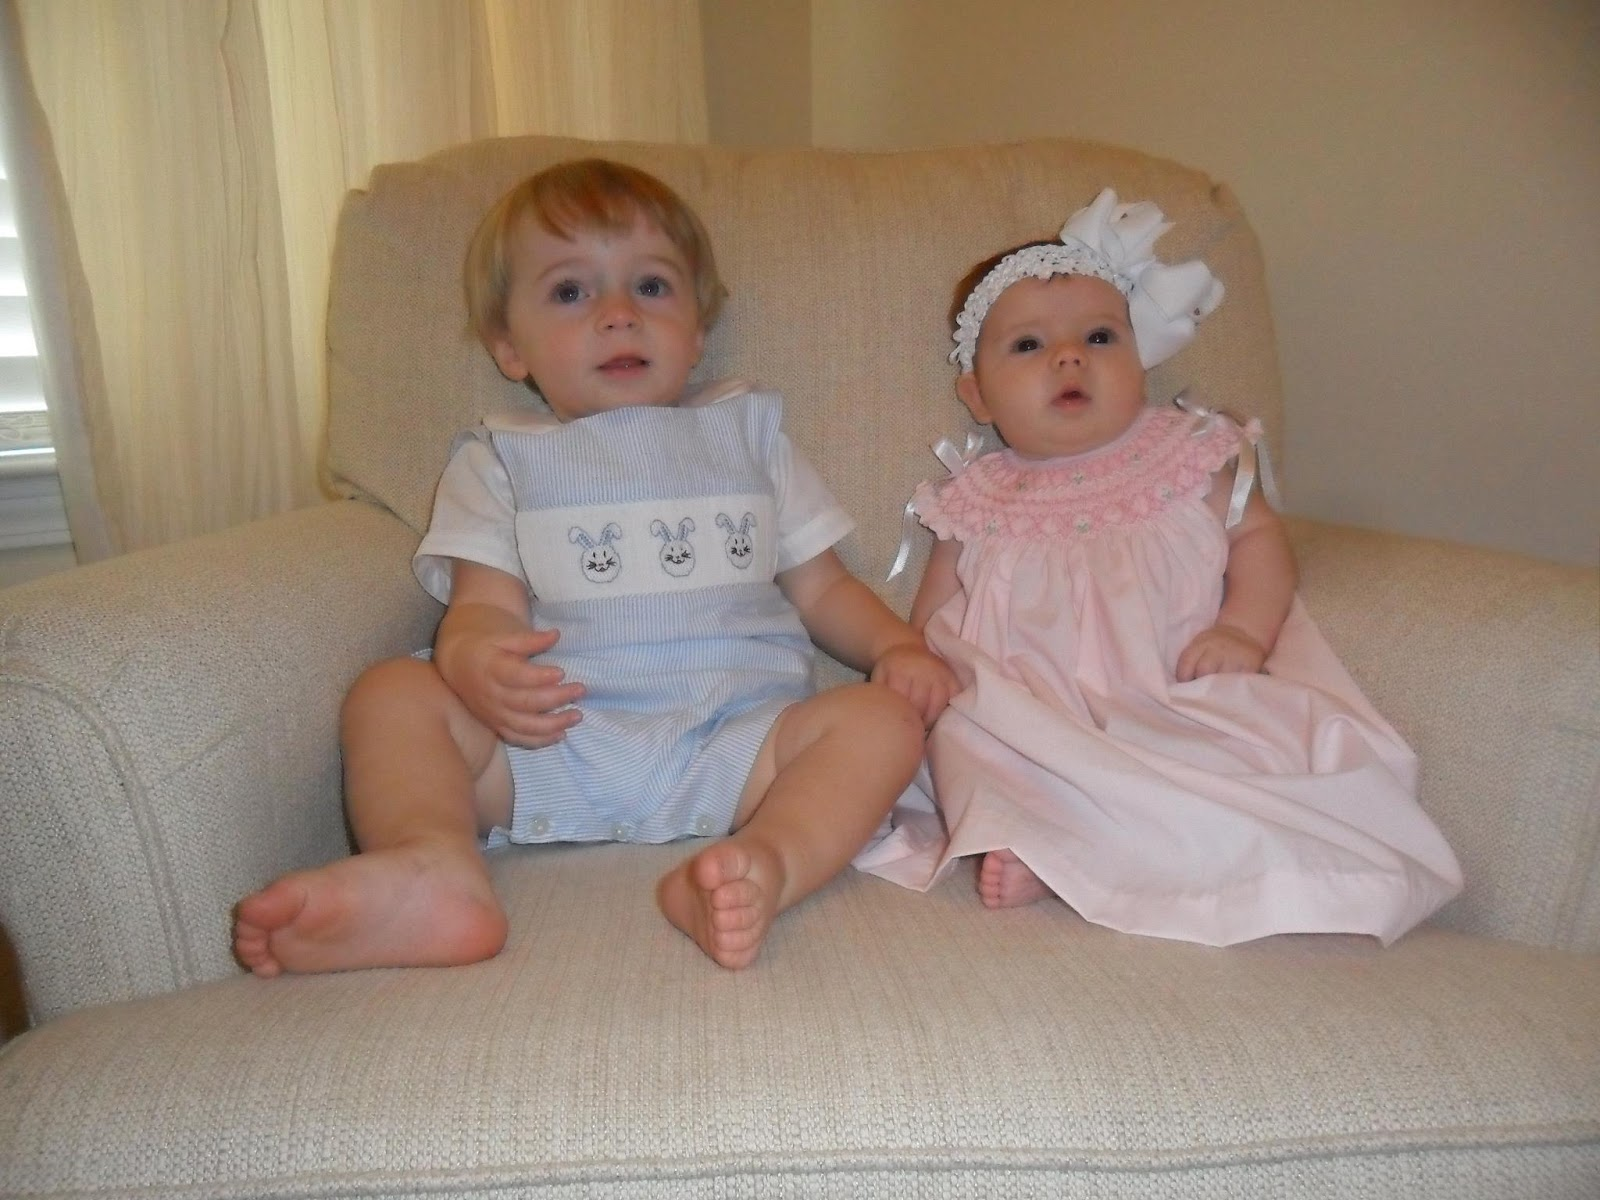 Smocked Auctions Blog - Auction Winners: 3/27/12 Smocked